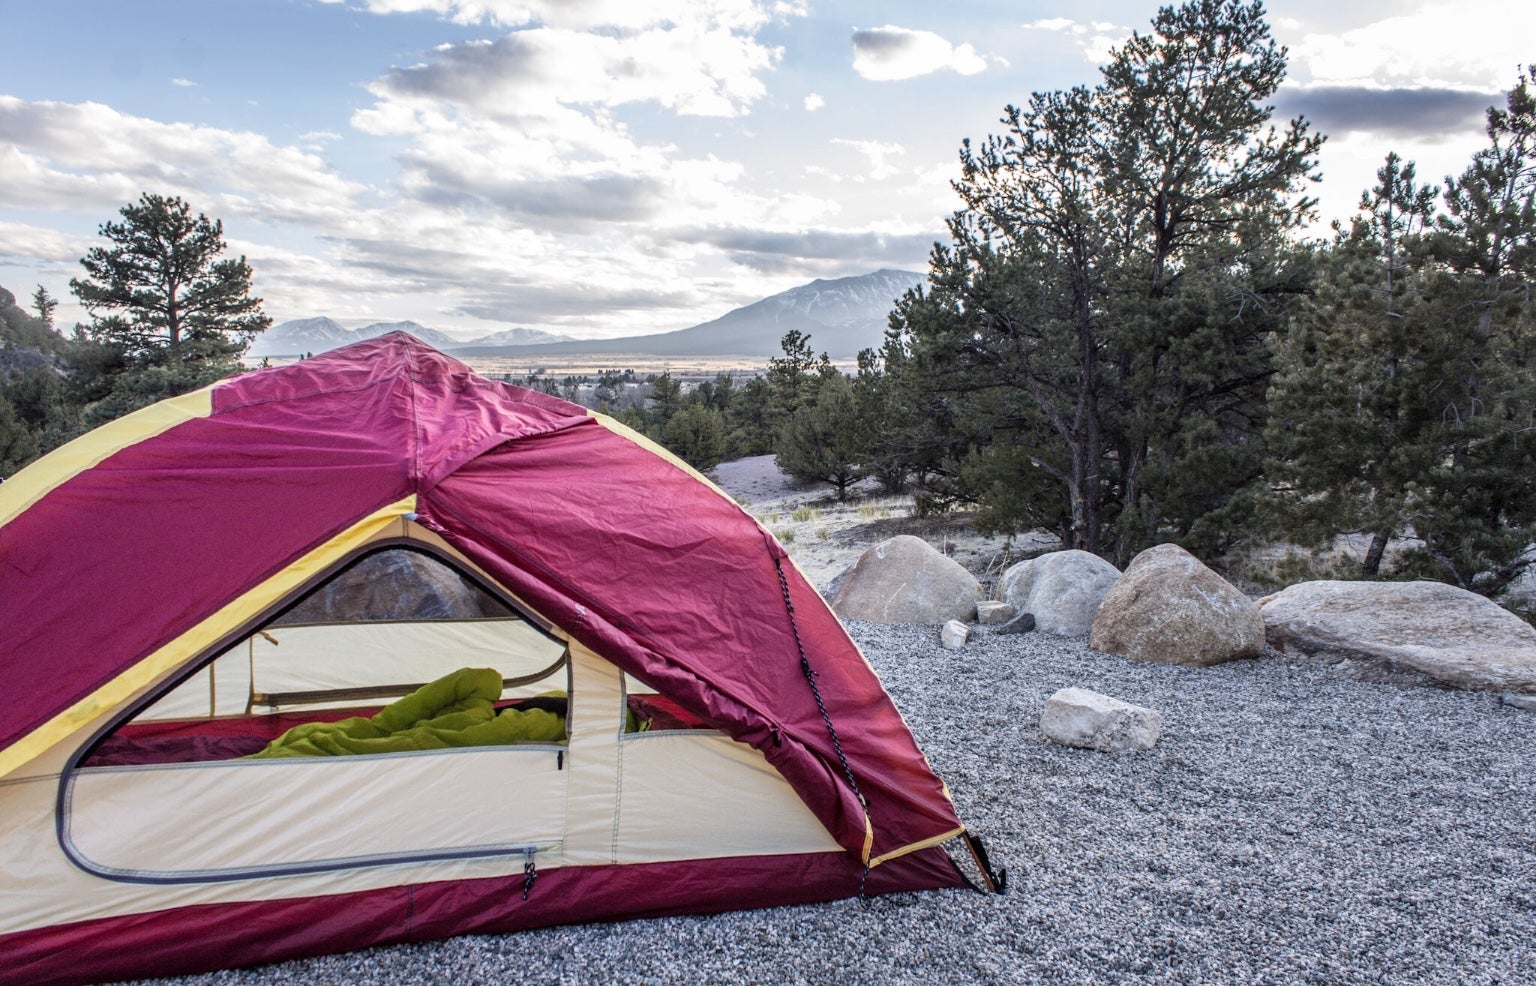 Red tent with sleeping bag inside set up in campsite beside evergreen trees and below large mountains in Colorado.